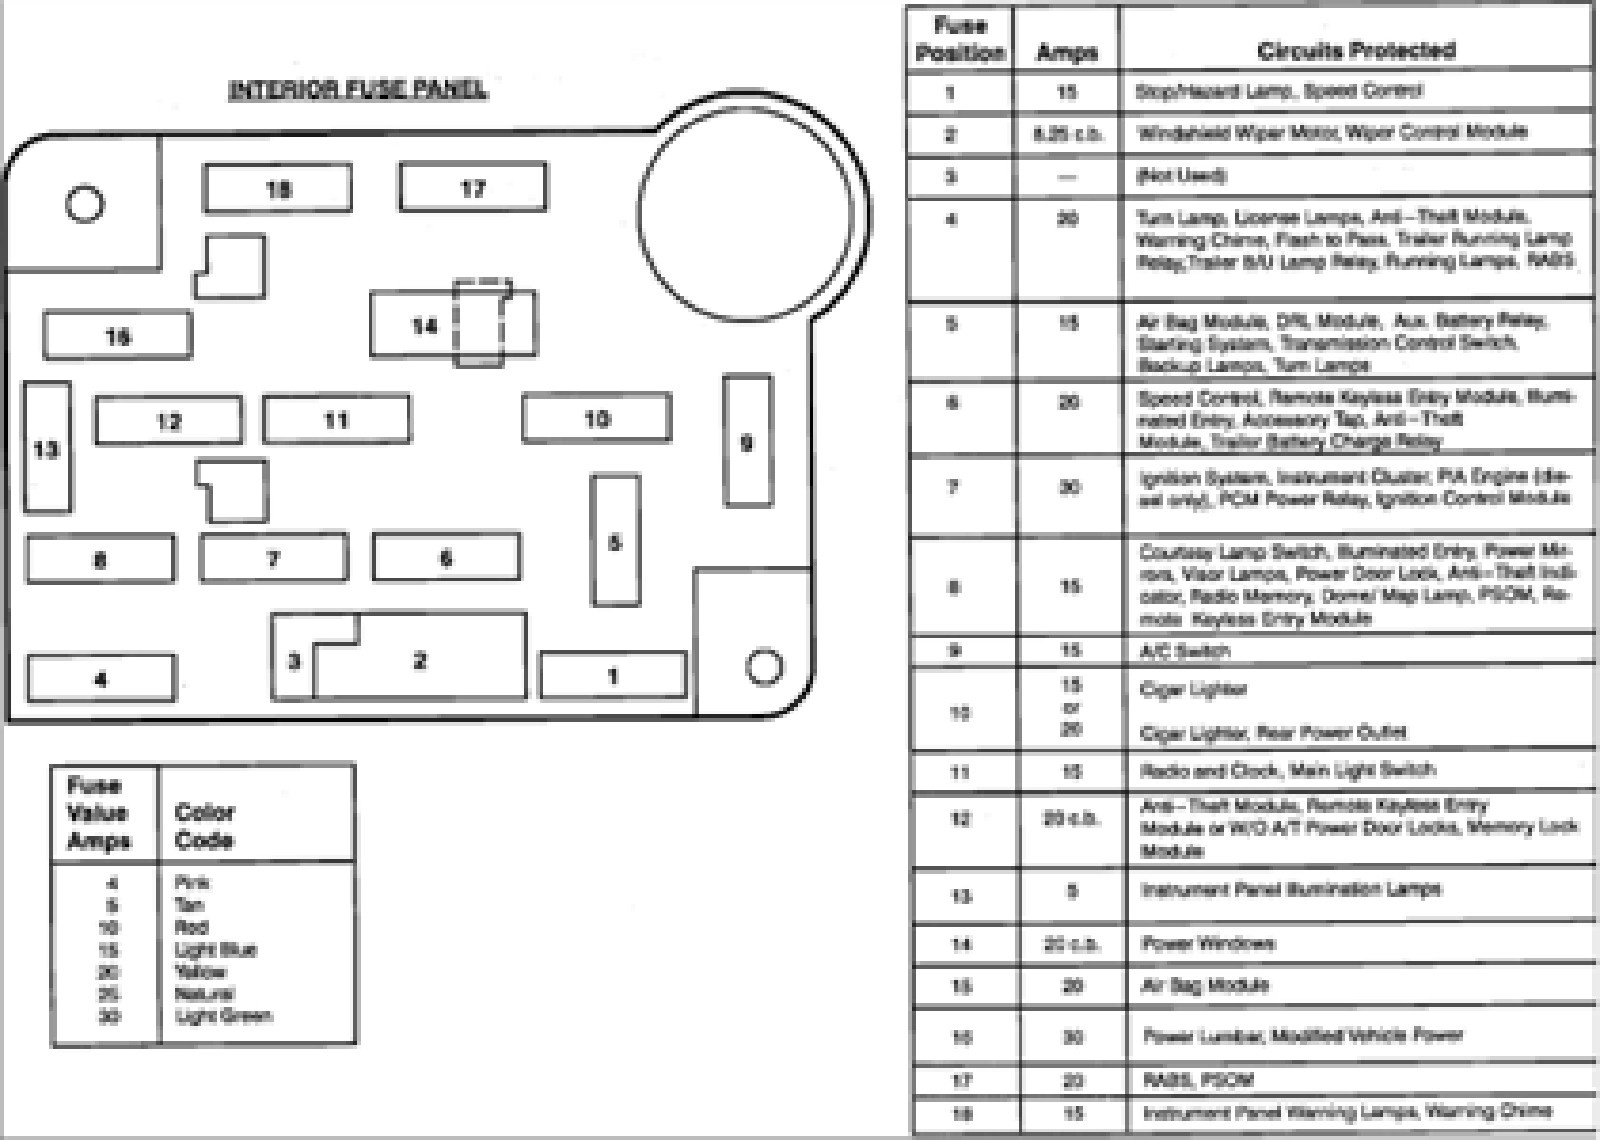 Ford E 150 Questions Fuse Diagram For A 1993 Ford Econoline Van Dodge Fuse  Box Diagram Ford Fuse Box Diagram